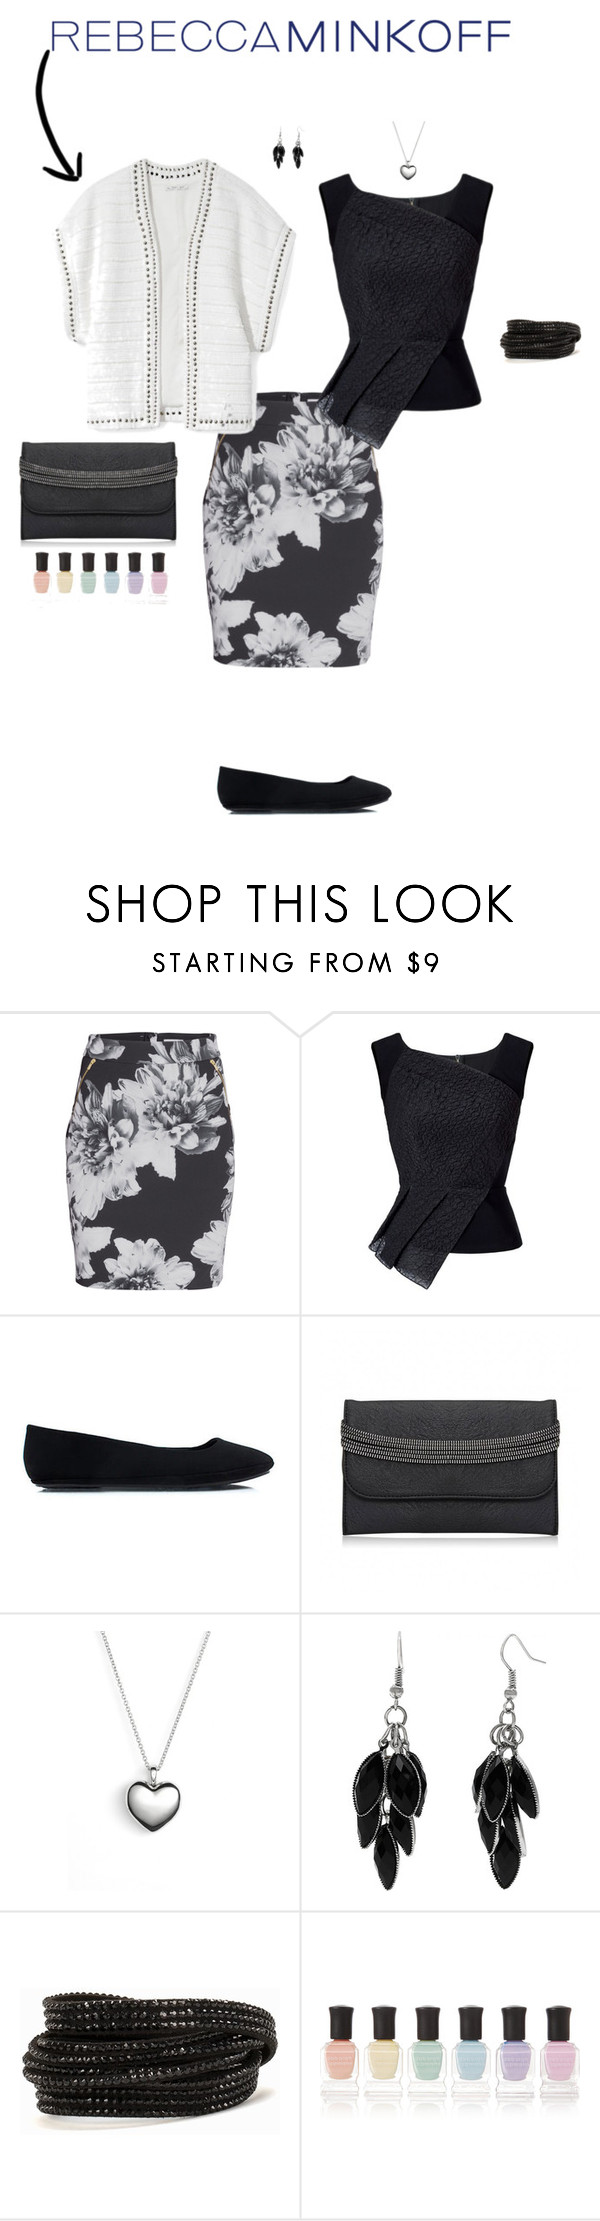 """Untitled #7436"" by erinlindsay83 ❤ liked on Polyvore featuring Rebecca Minkoff, Roland Mouret, Pandora, Alexa Starr, Pieces, Deborah Lippmann, women's clothing, women, female and woman"